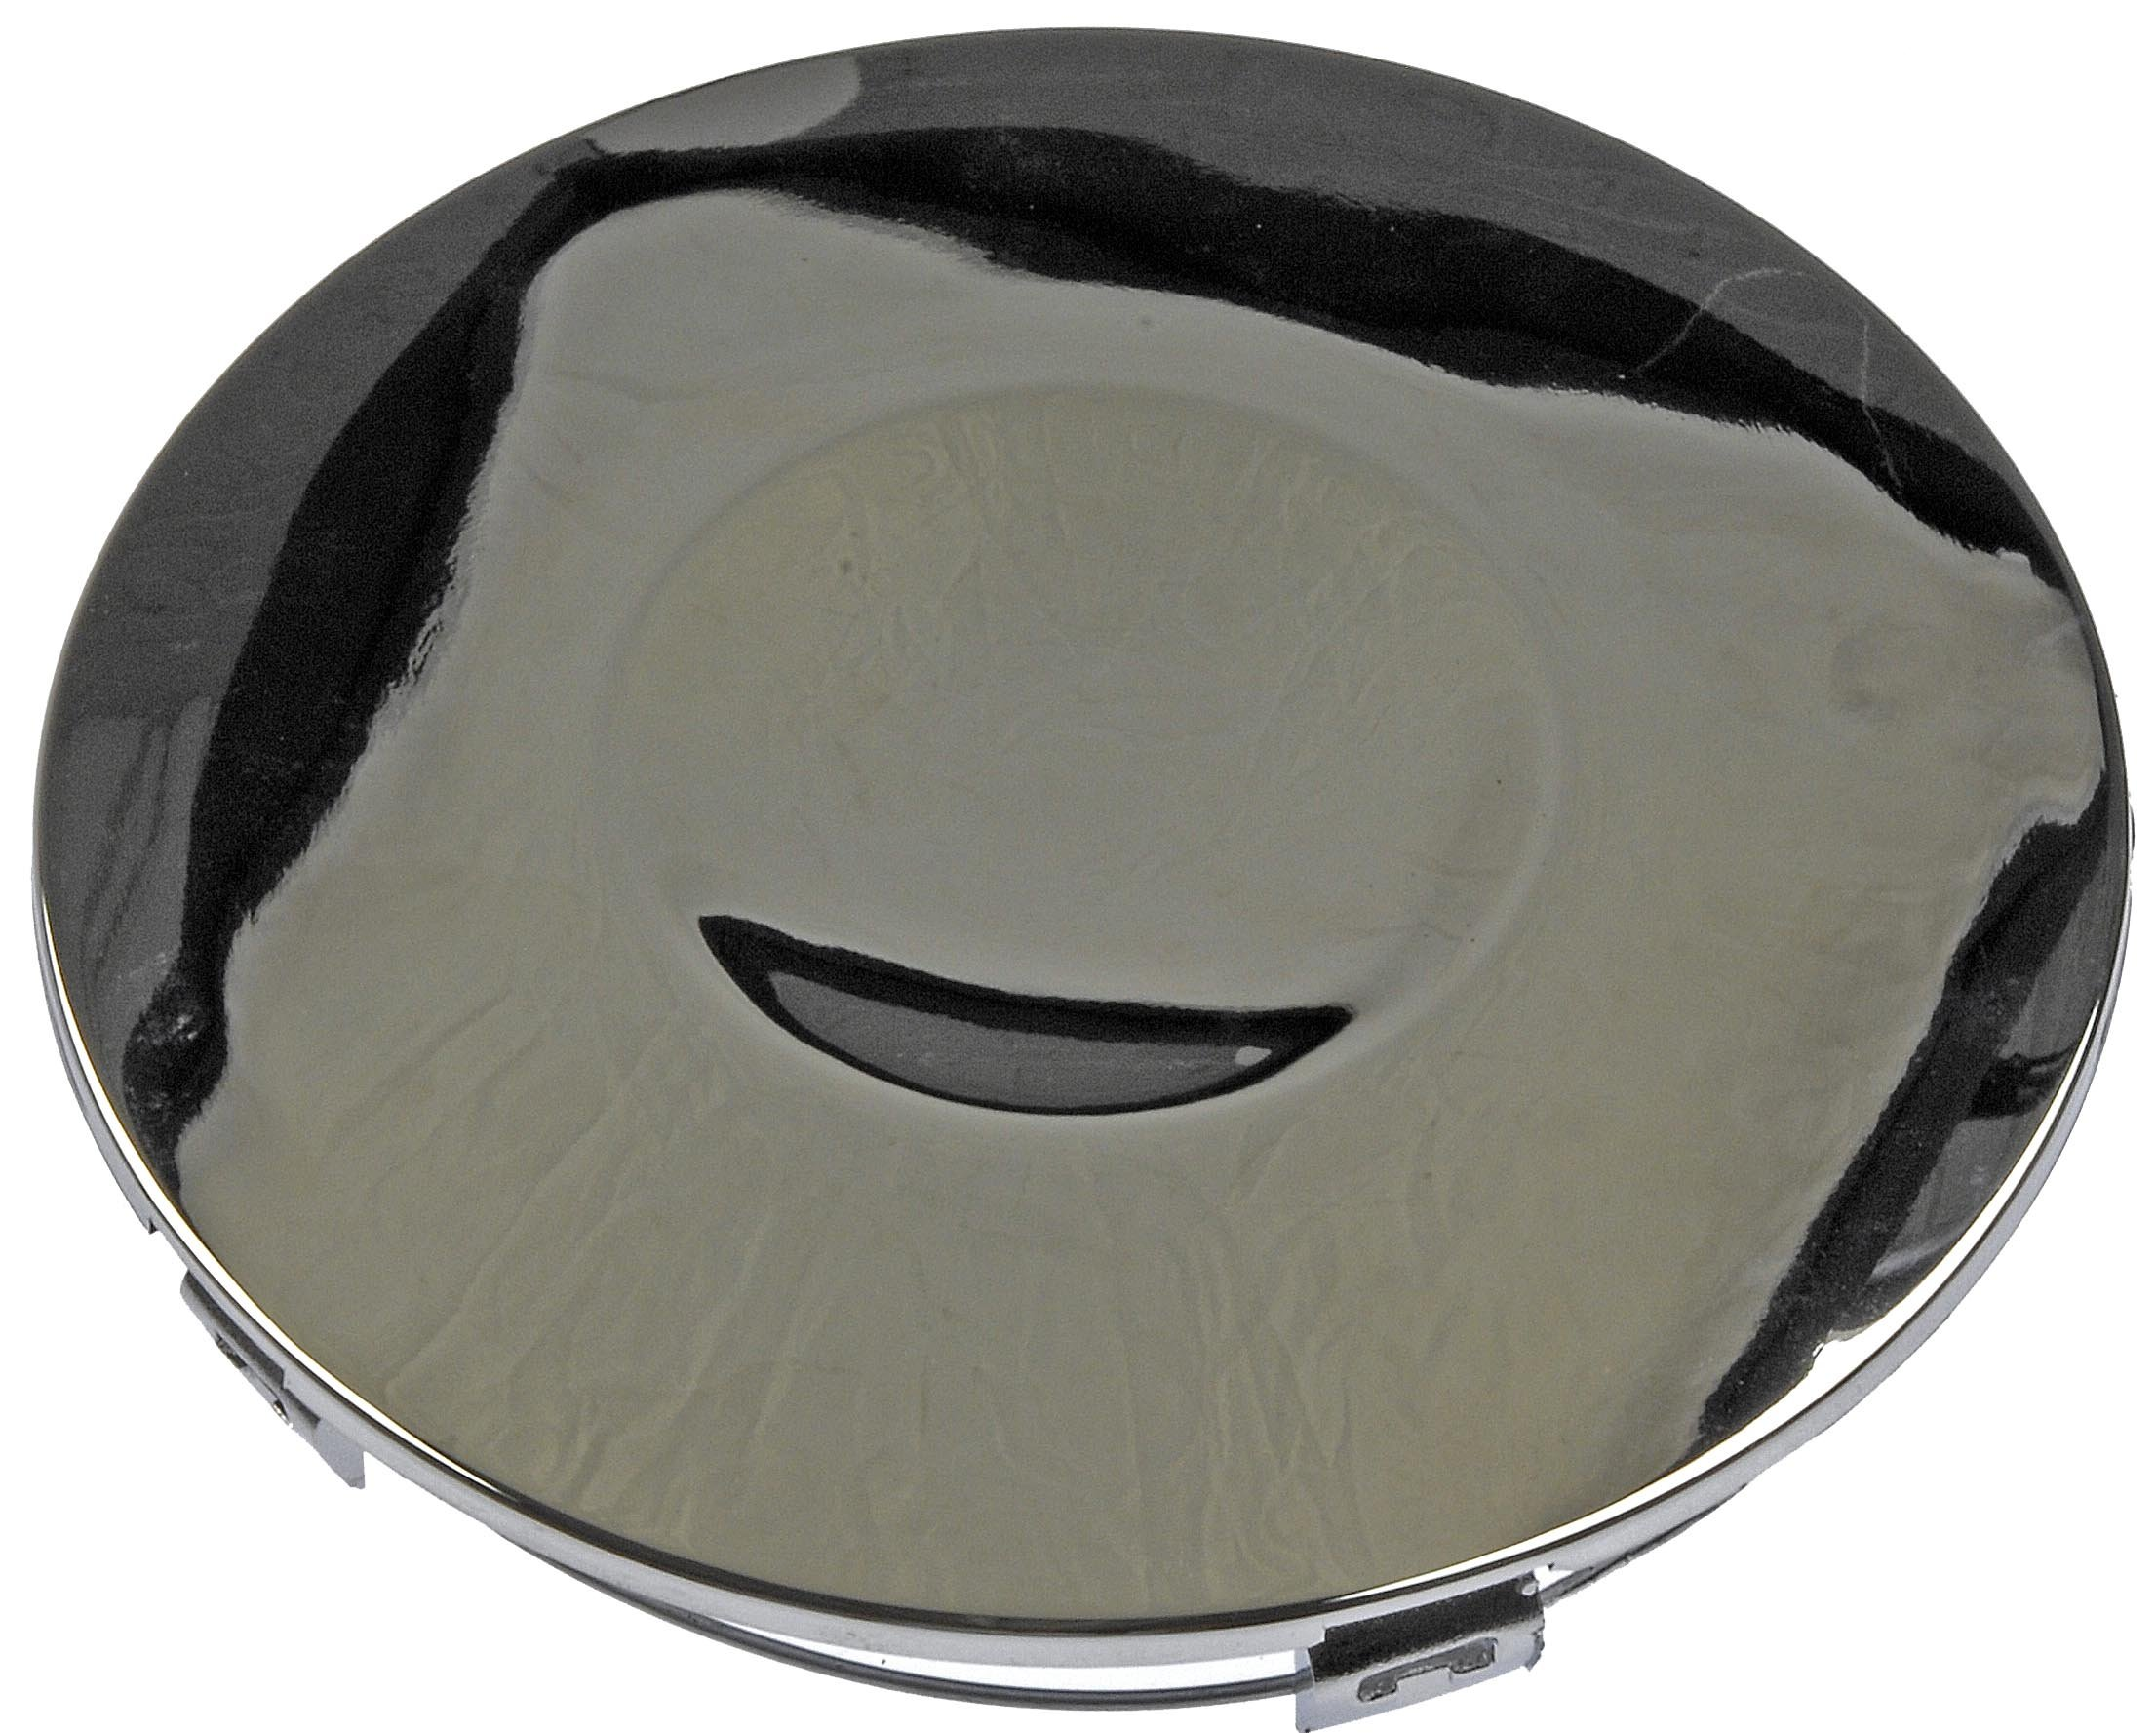 Dorman 909-010 Wheel Center Cap